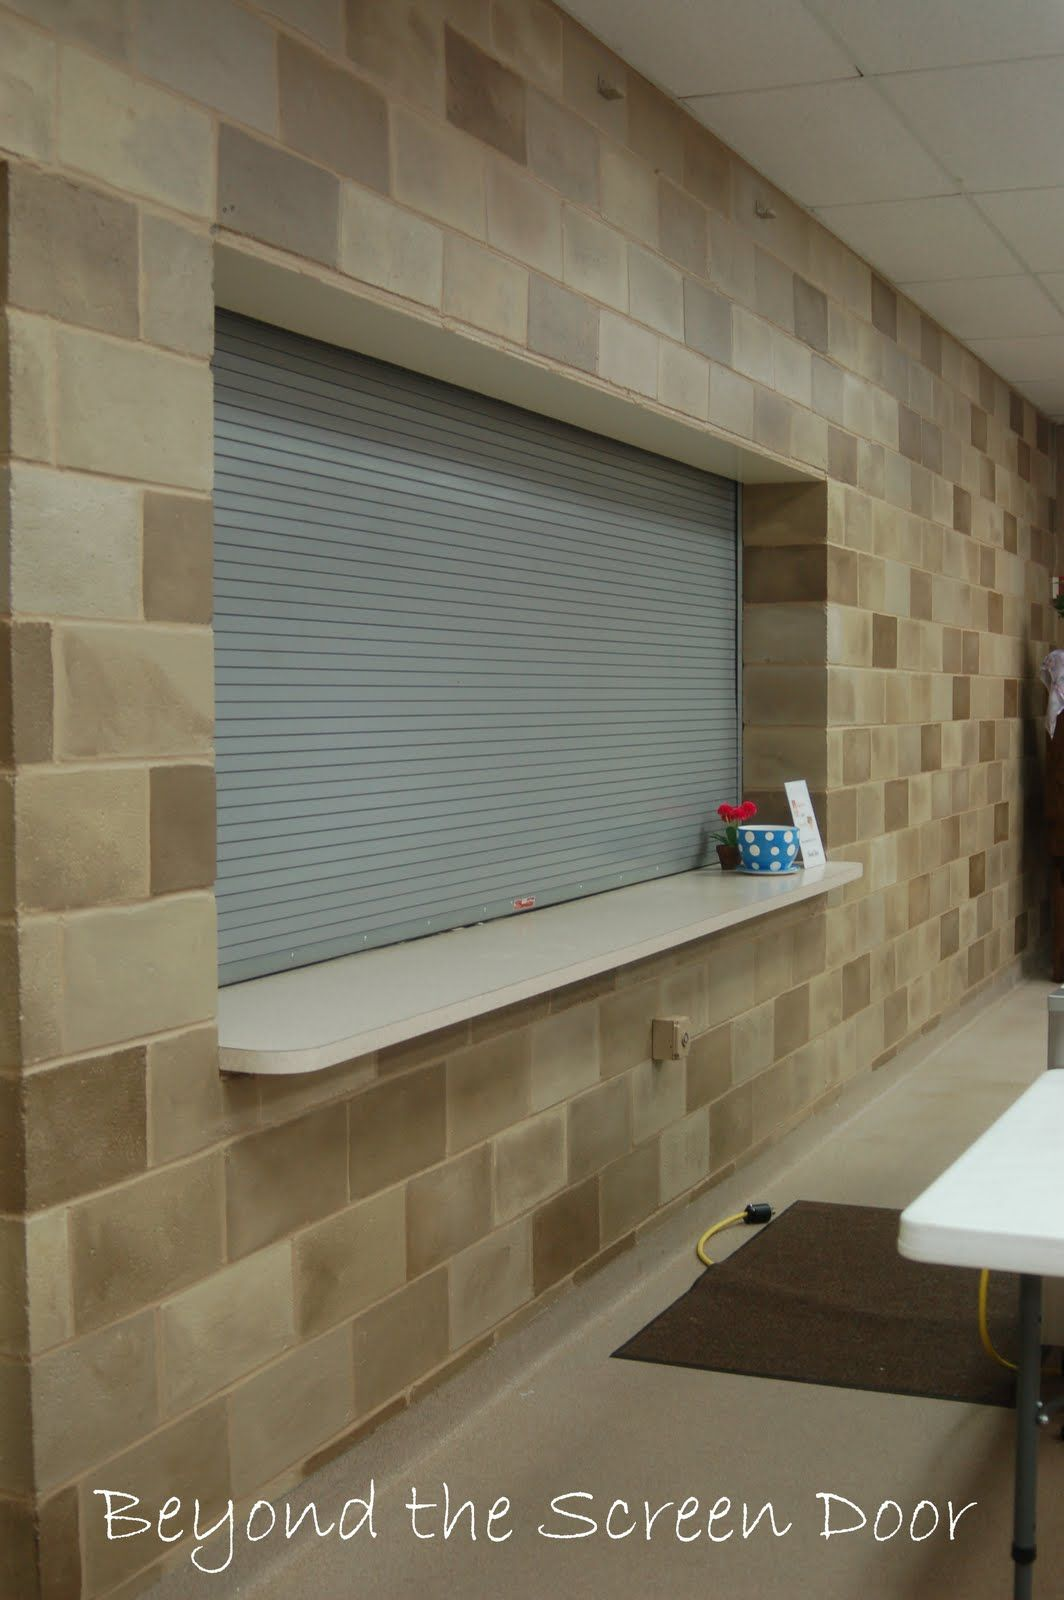 How To Paint A Concrete Wall To Look Like Stone Sonya Hamilton Designs Cinder Block Walls Concrete Block Walls Concrete Blocks